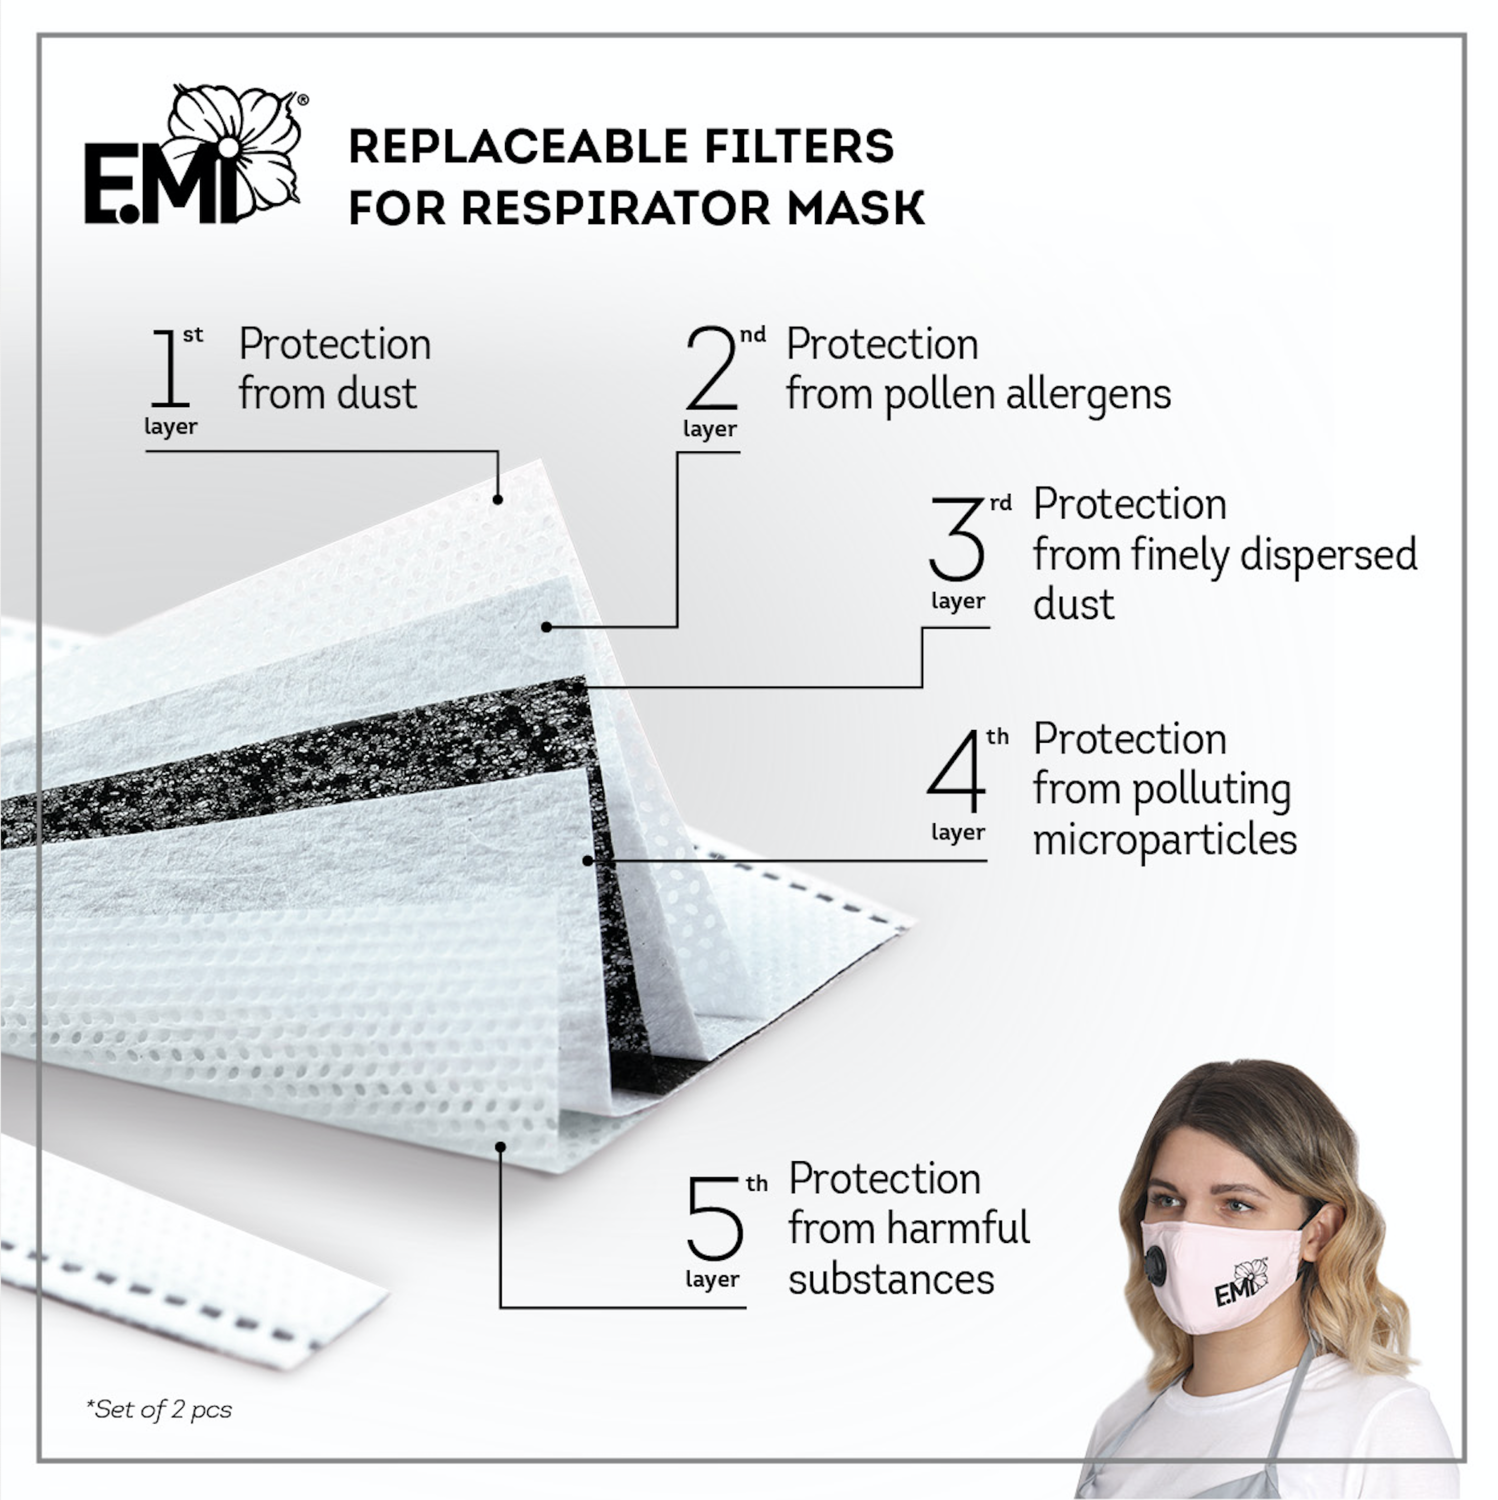 Replaceable filters for respirator mask, 2 pcs